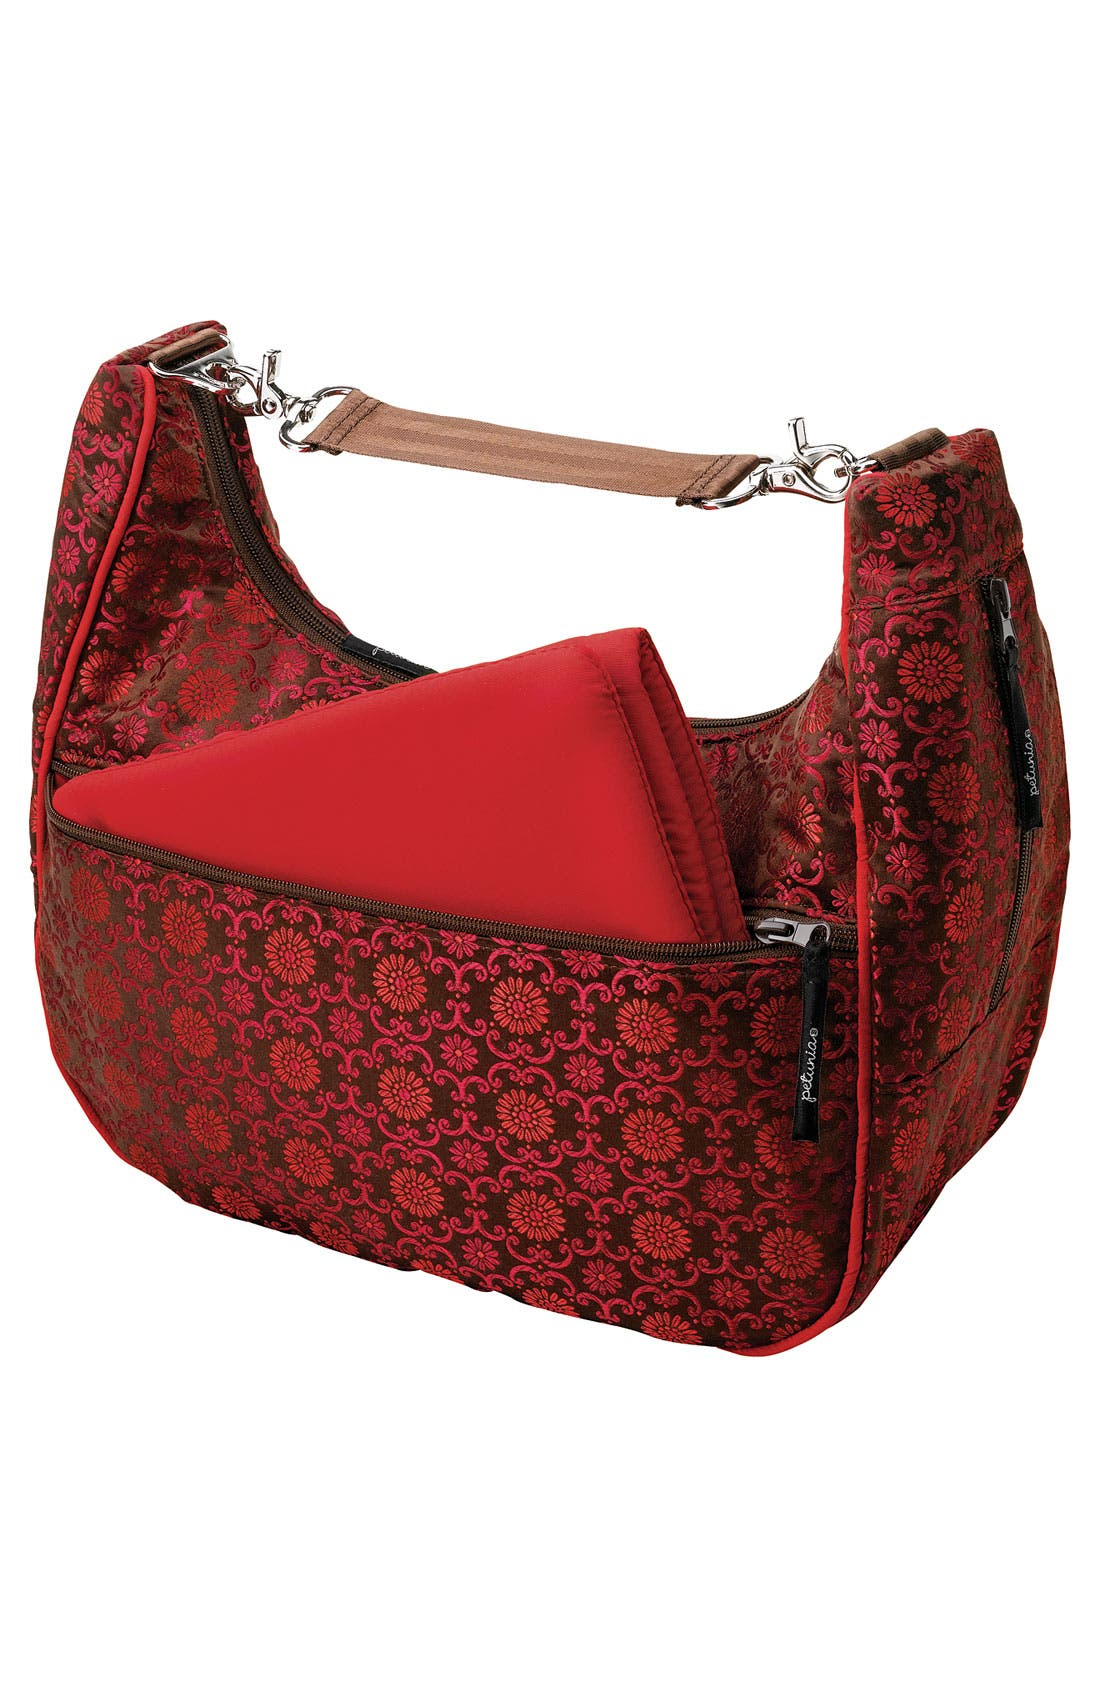 Alternate Image 2  - Petunia Pickle Bottom 'Touring Tote' Glazed Diaper Bag